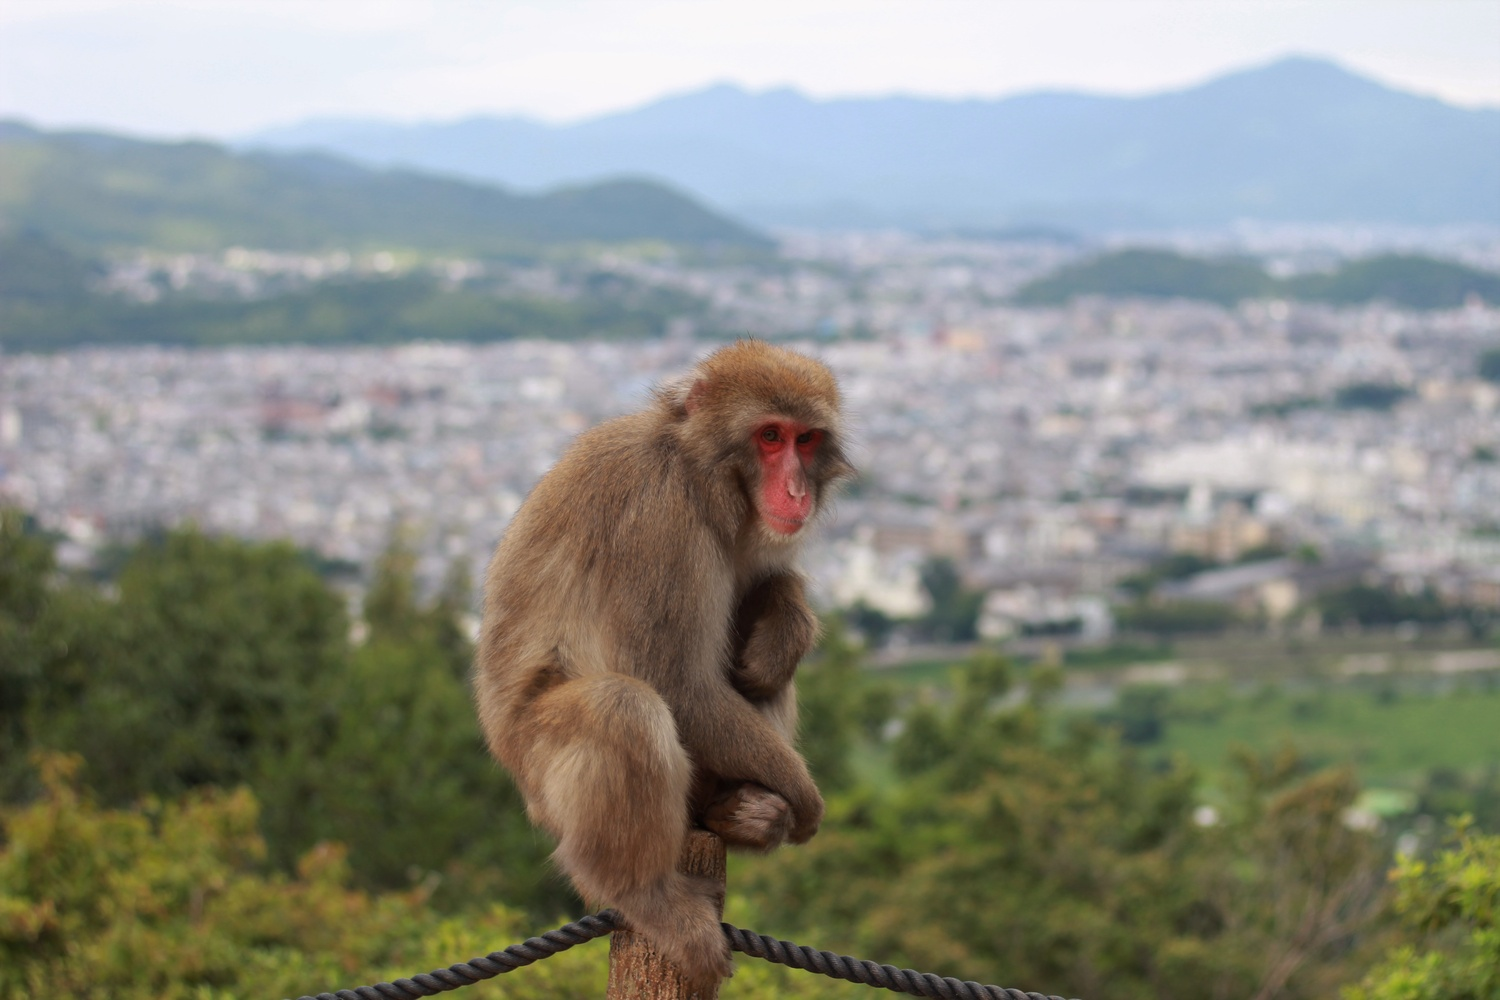 Monkey at Iwatayama